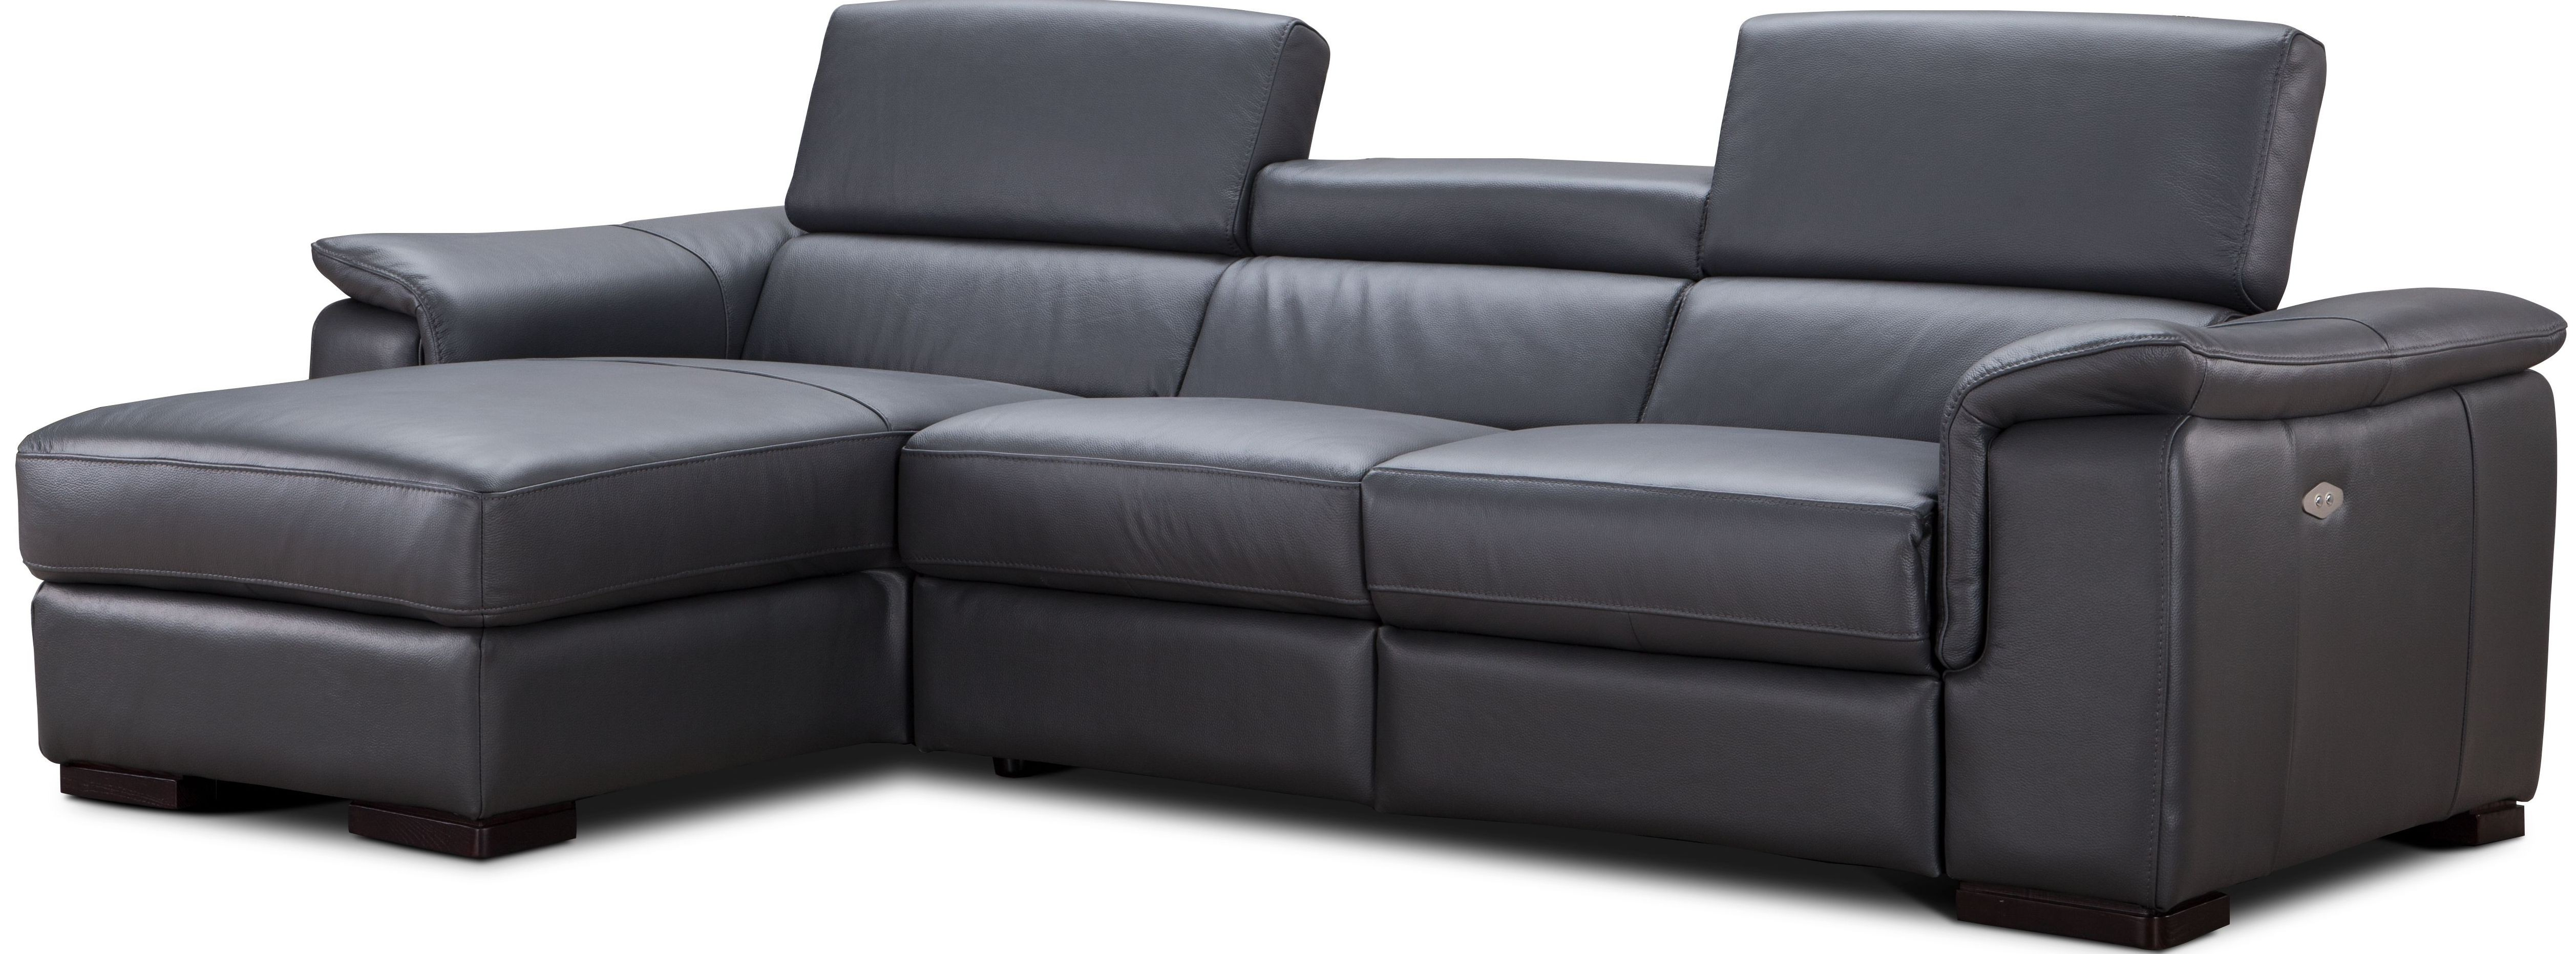 gray leather sofa recliner tantra di malaysia allegra slate power reclining laf sectional